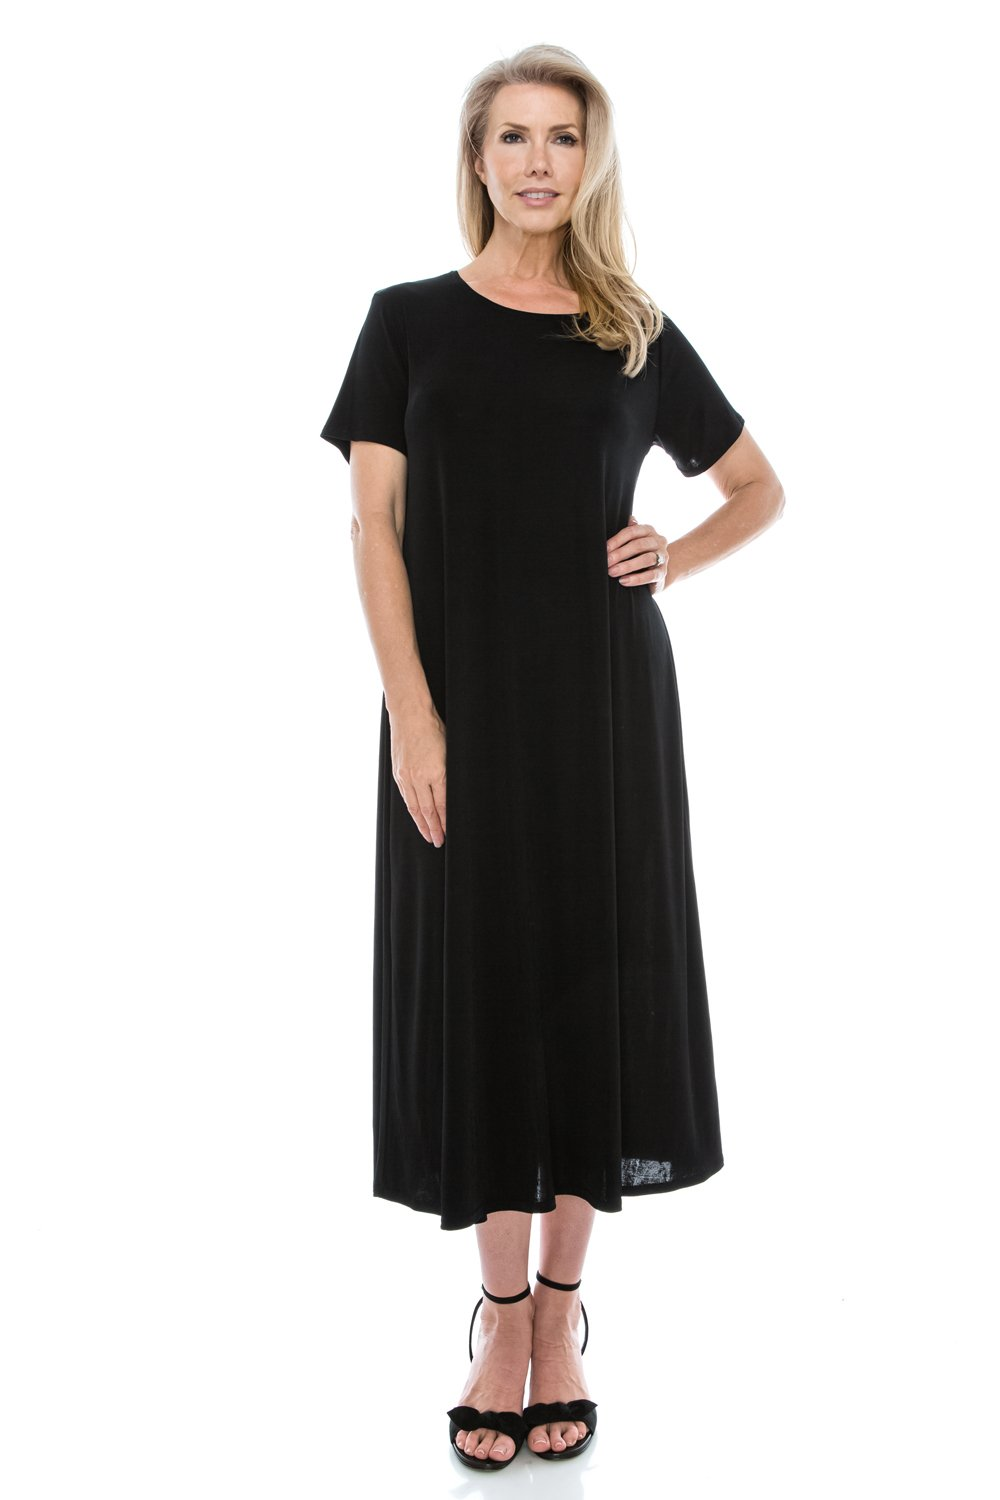 Jostar Stretchy Long Dress with Short Sleeve, Plus Sizes in Black Color in 3XL Size